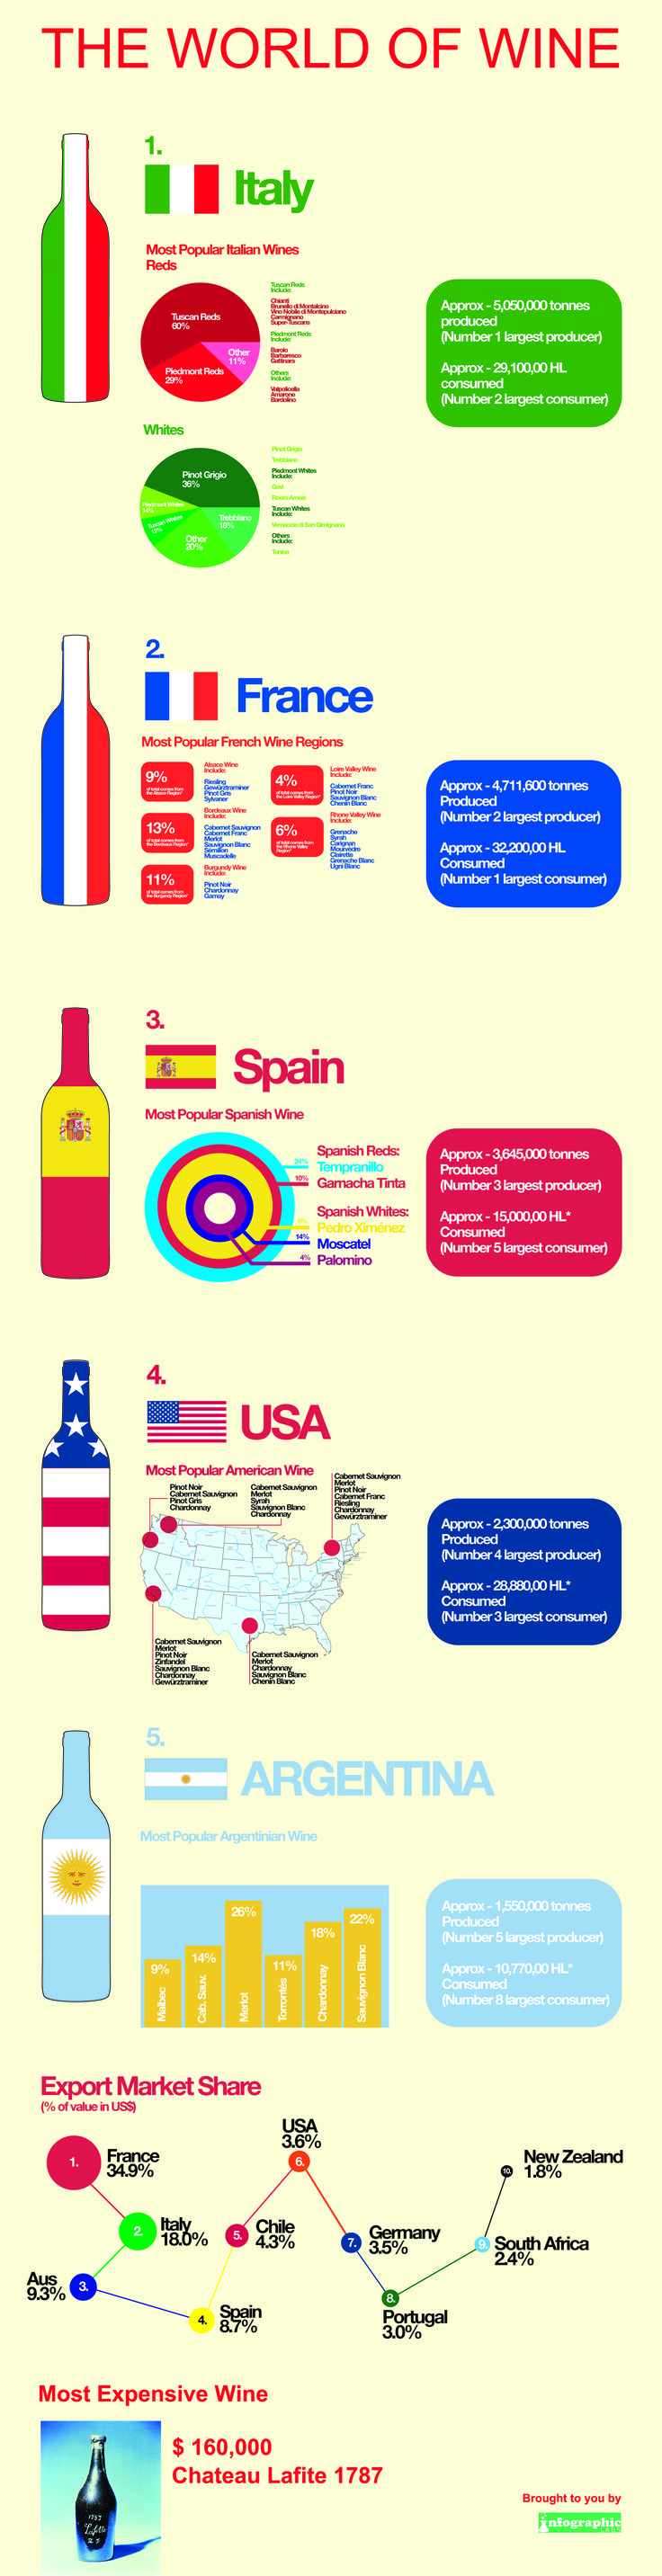 We live near those red dots. Karma is a readily available grapevine. #wine #AmericasprettyOK (from o5.com)